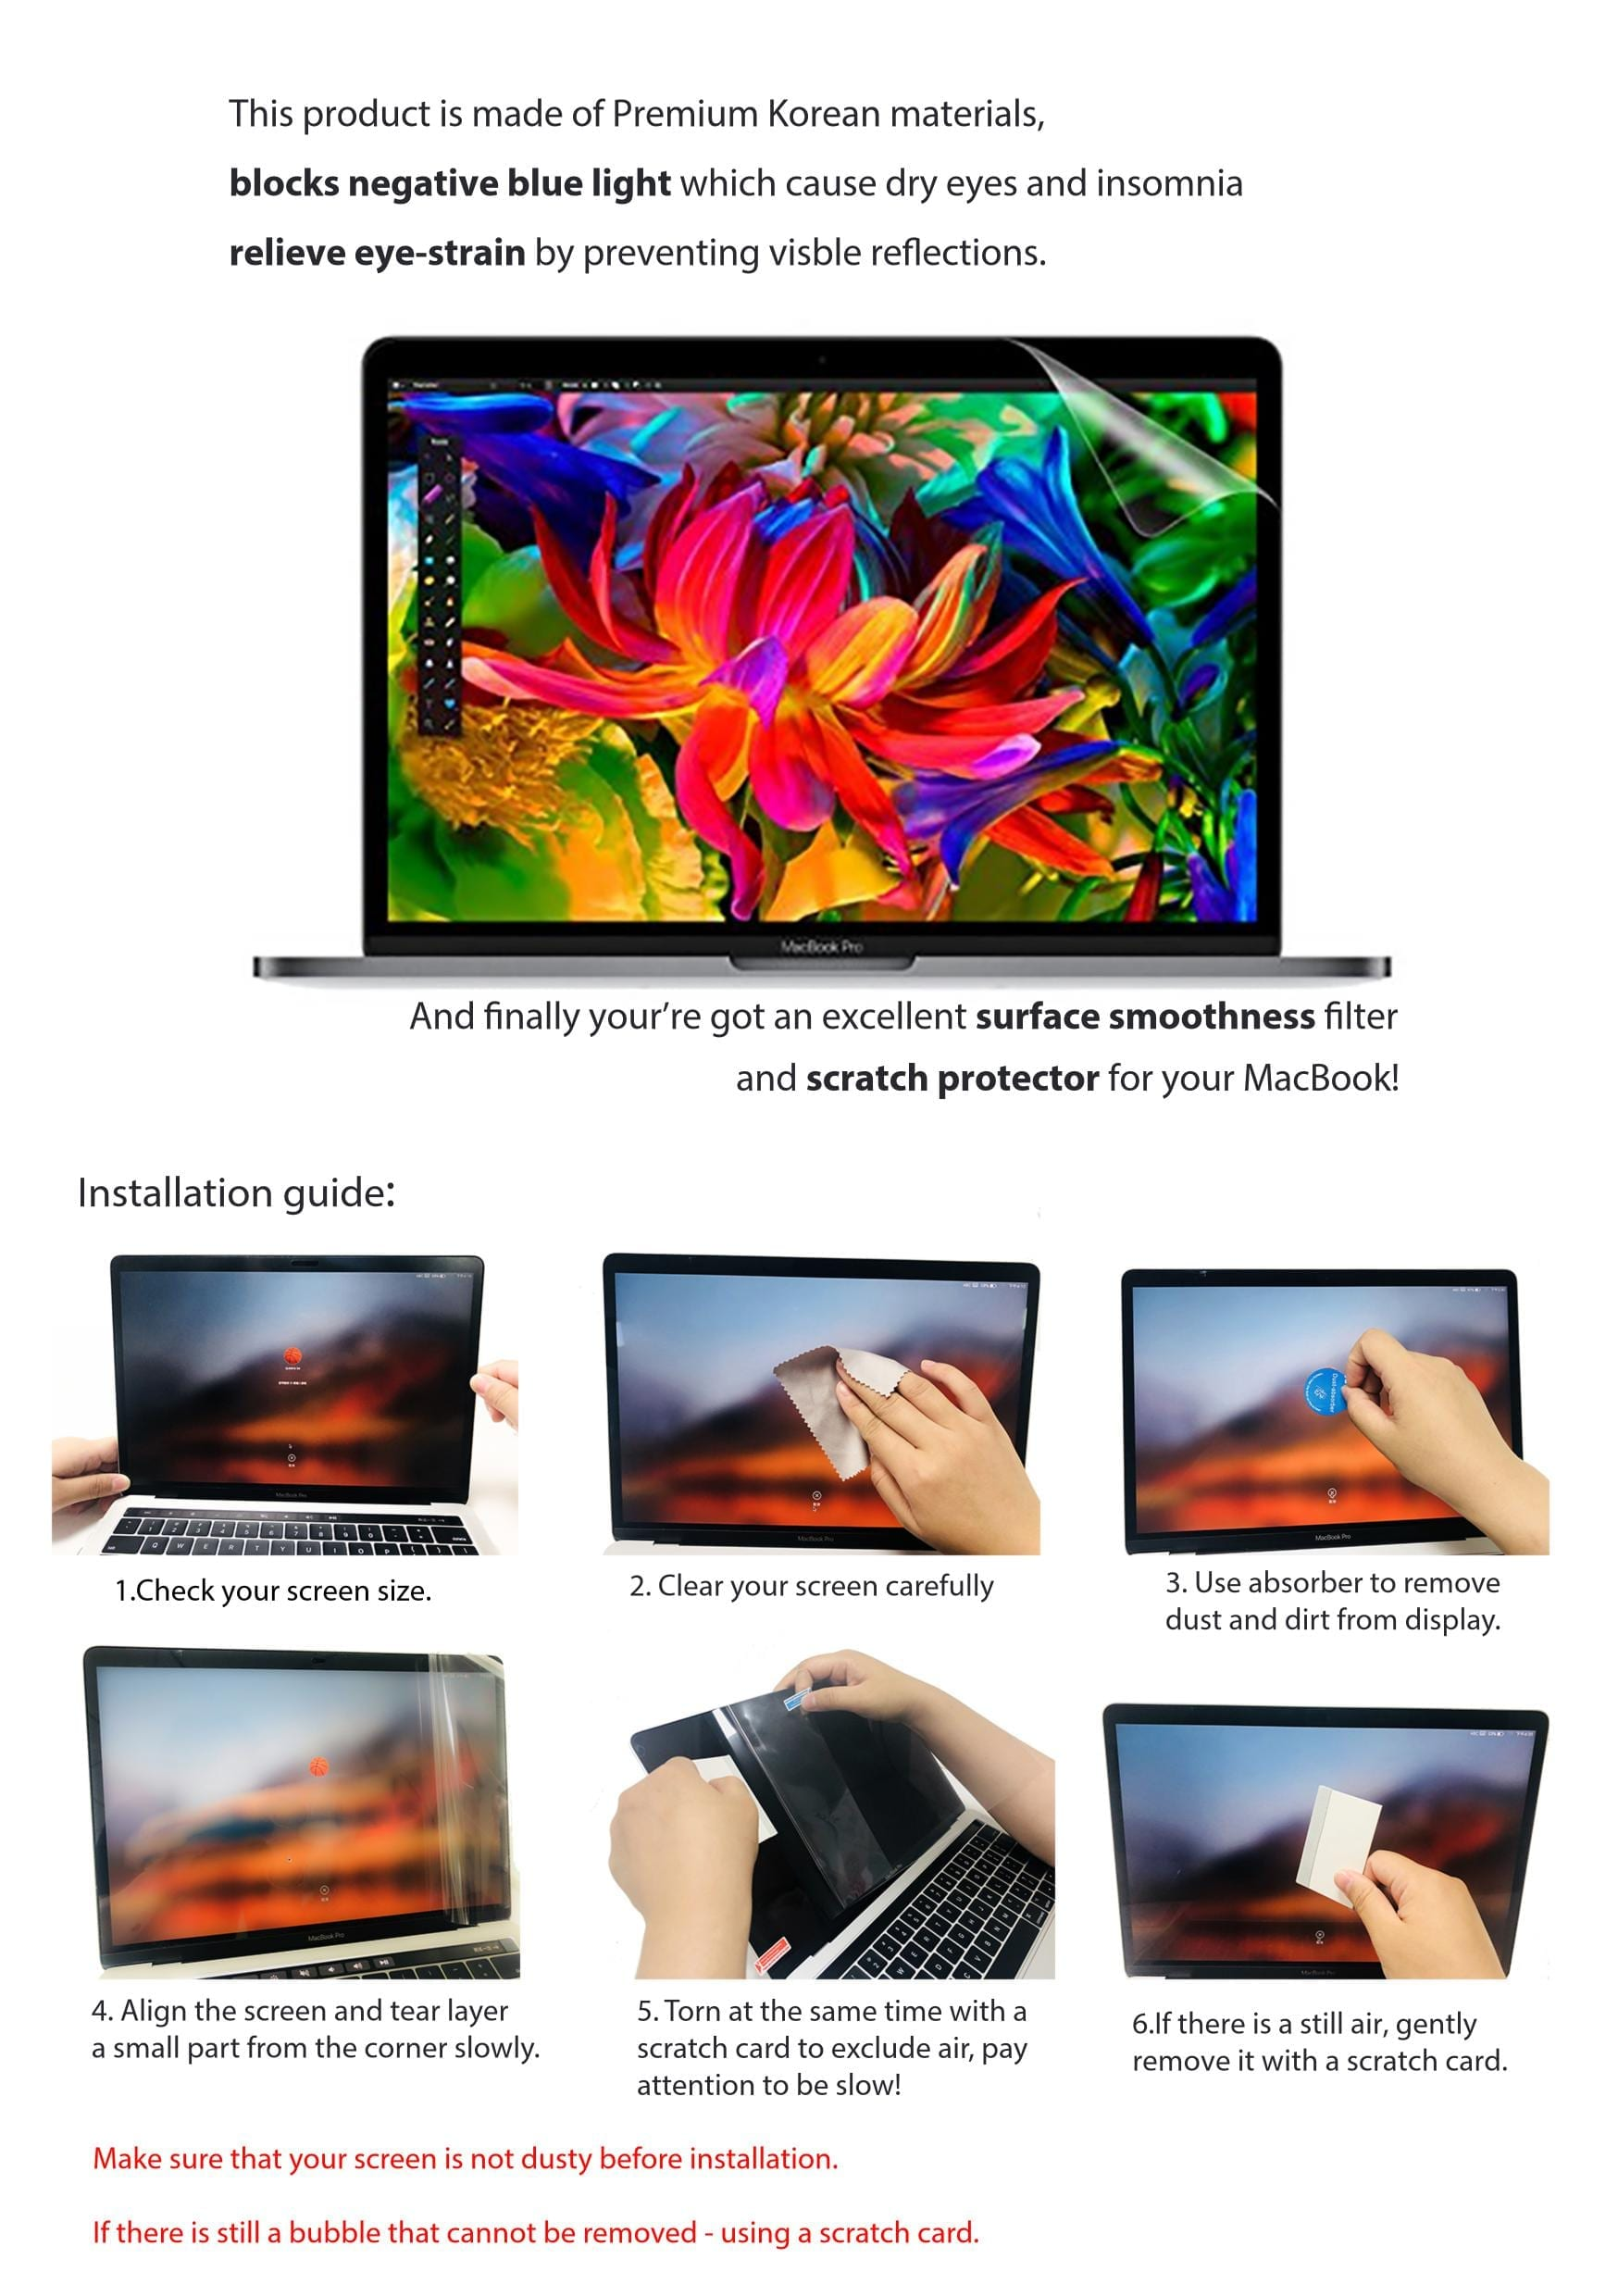 2-Pack Homy Anti Blue Light Screen Protector Kit Eye Protection Contain: 1x Matte and 1x Glare Blocking Filter 7 5//8 x 13 9//16 inch. for 15.6 inch Widescreen Laptop Free Web Camera Sliding Cover